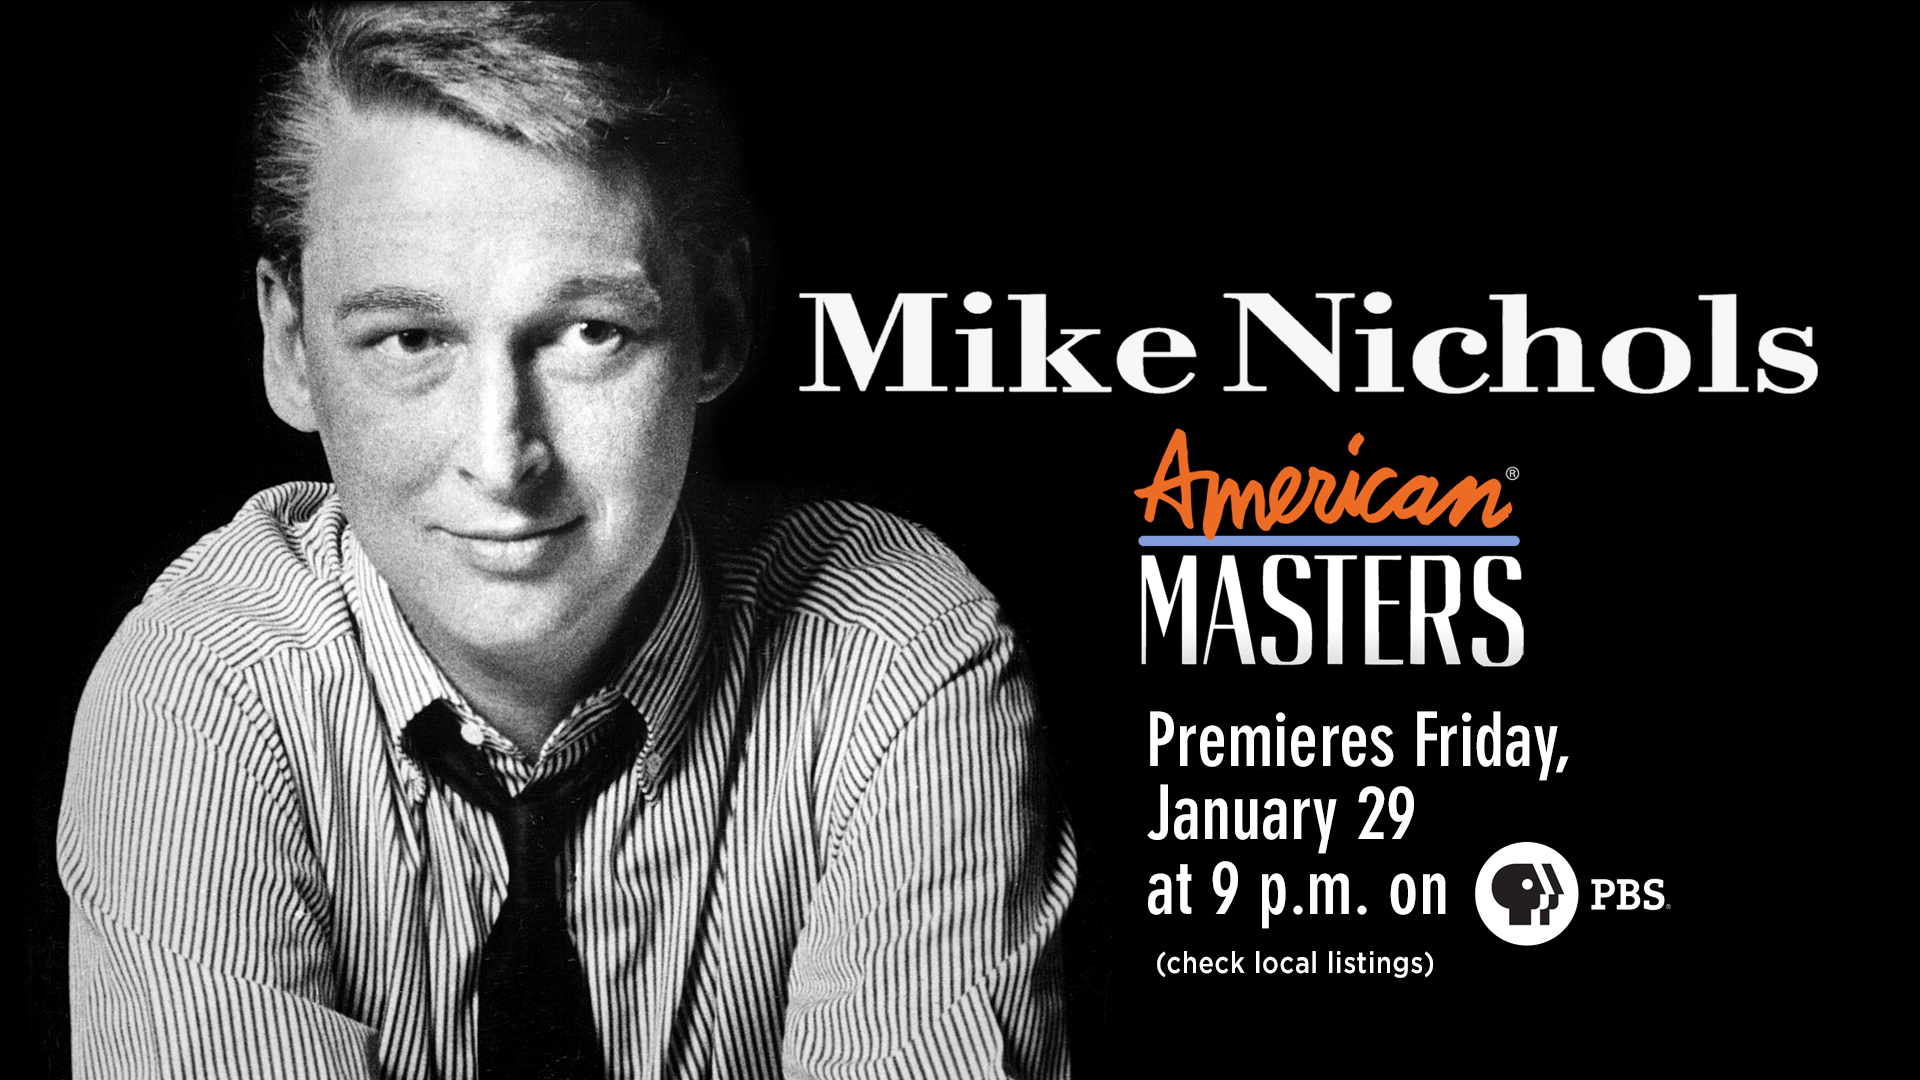 Mike Nichols Documentary American Masters